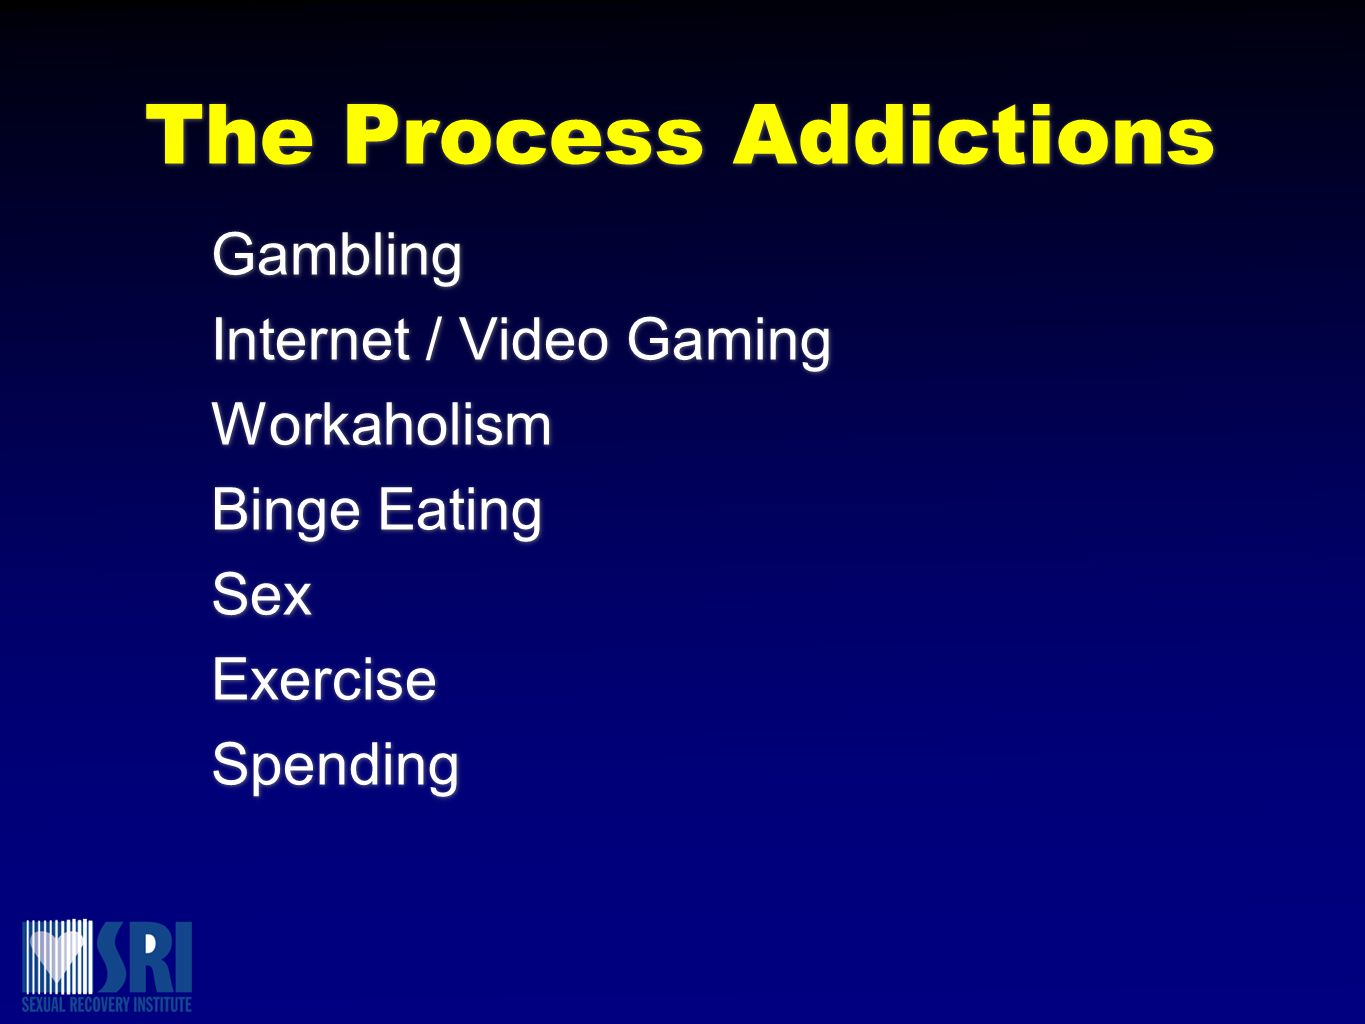 The Process Addictions